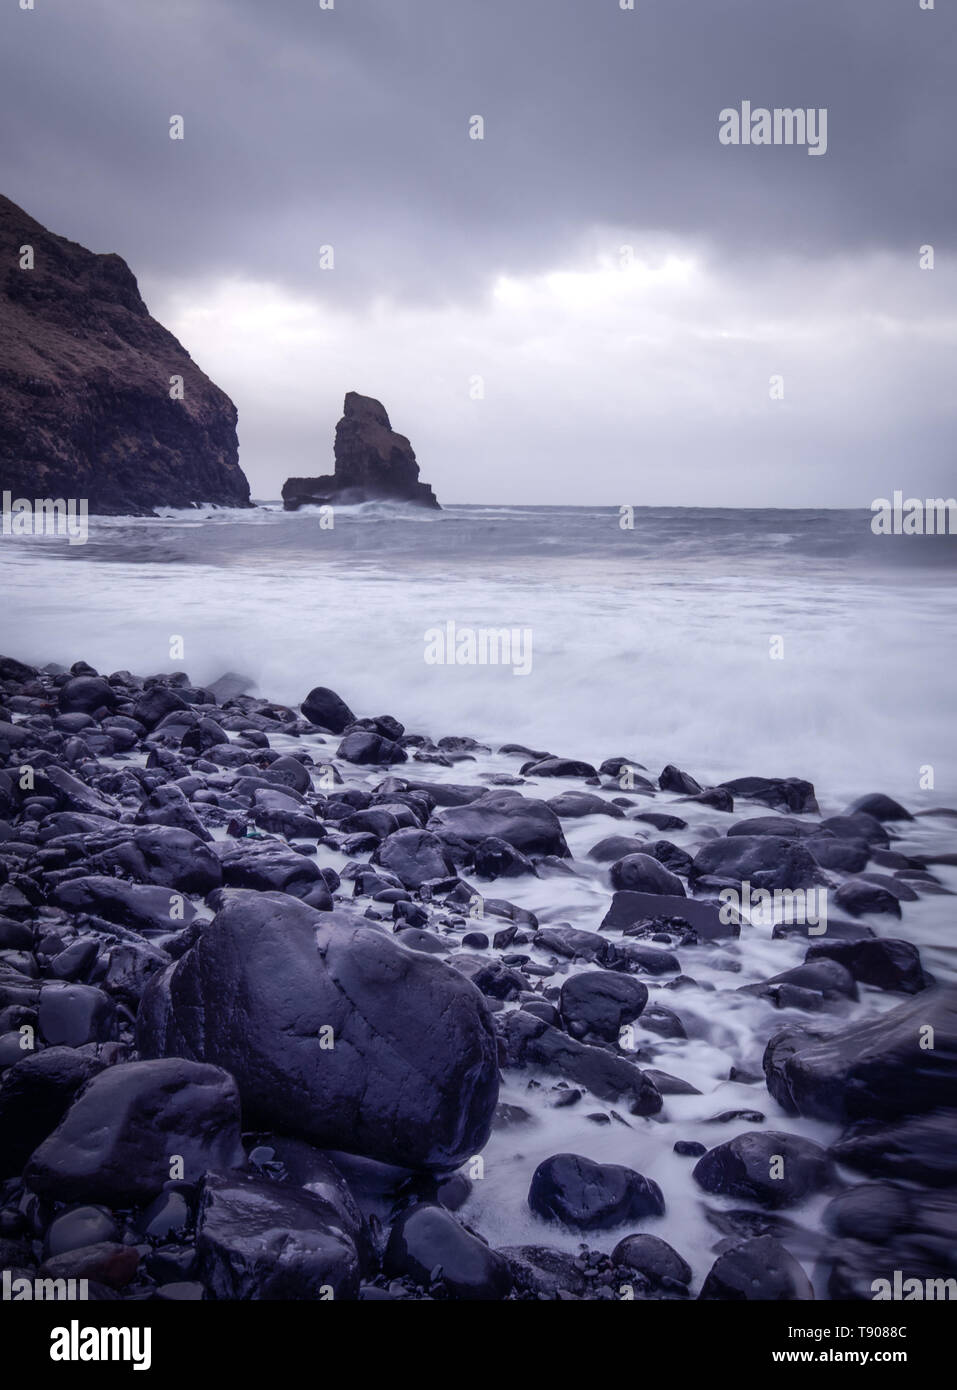 Talisker Bay, Isle of Skye, Scotland - Stock Image